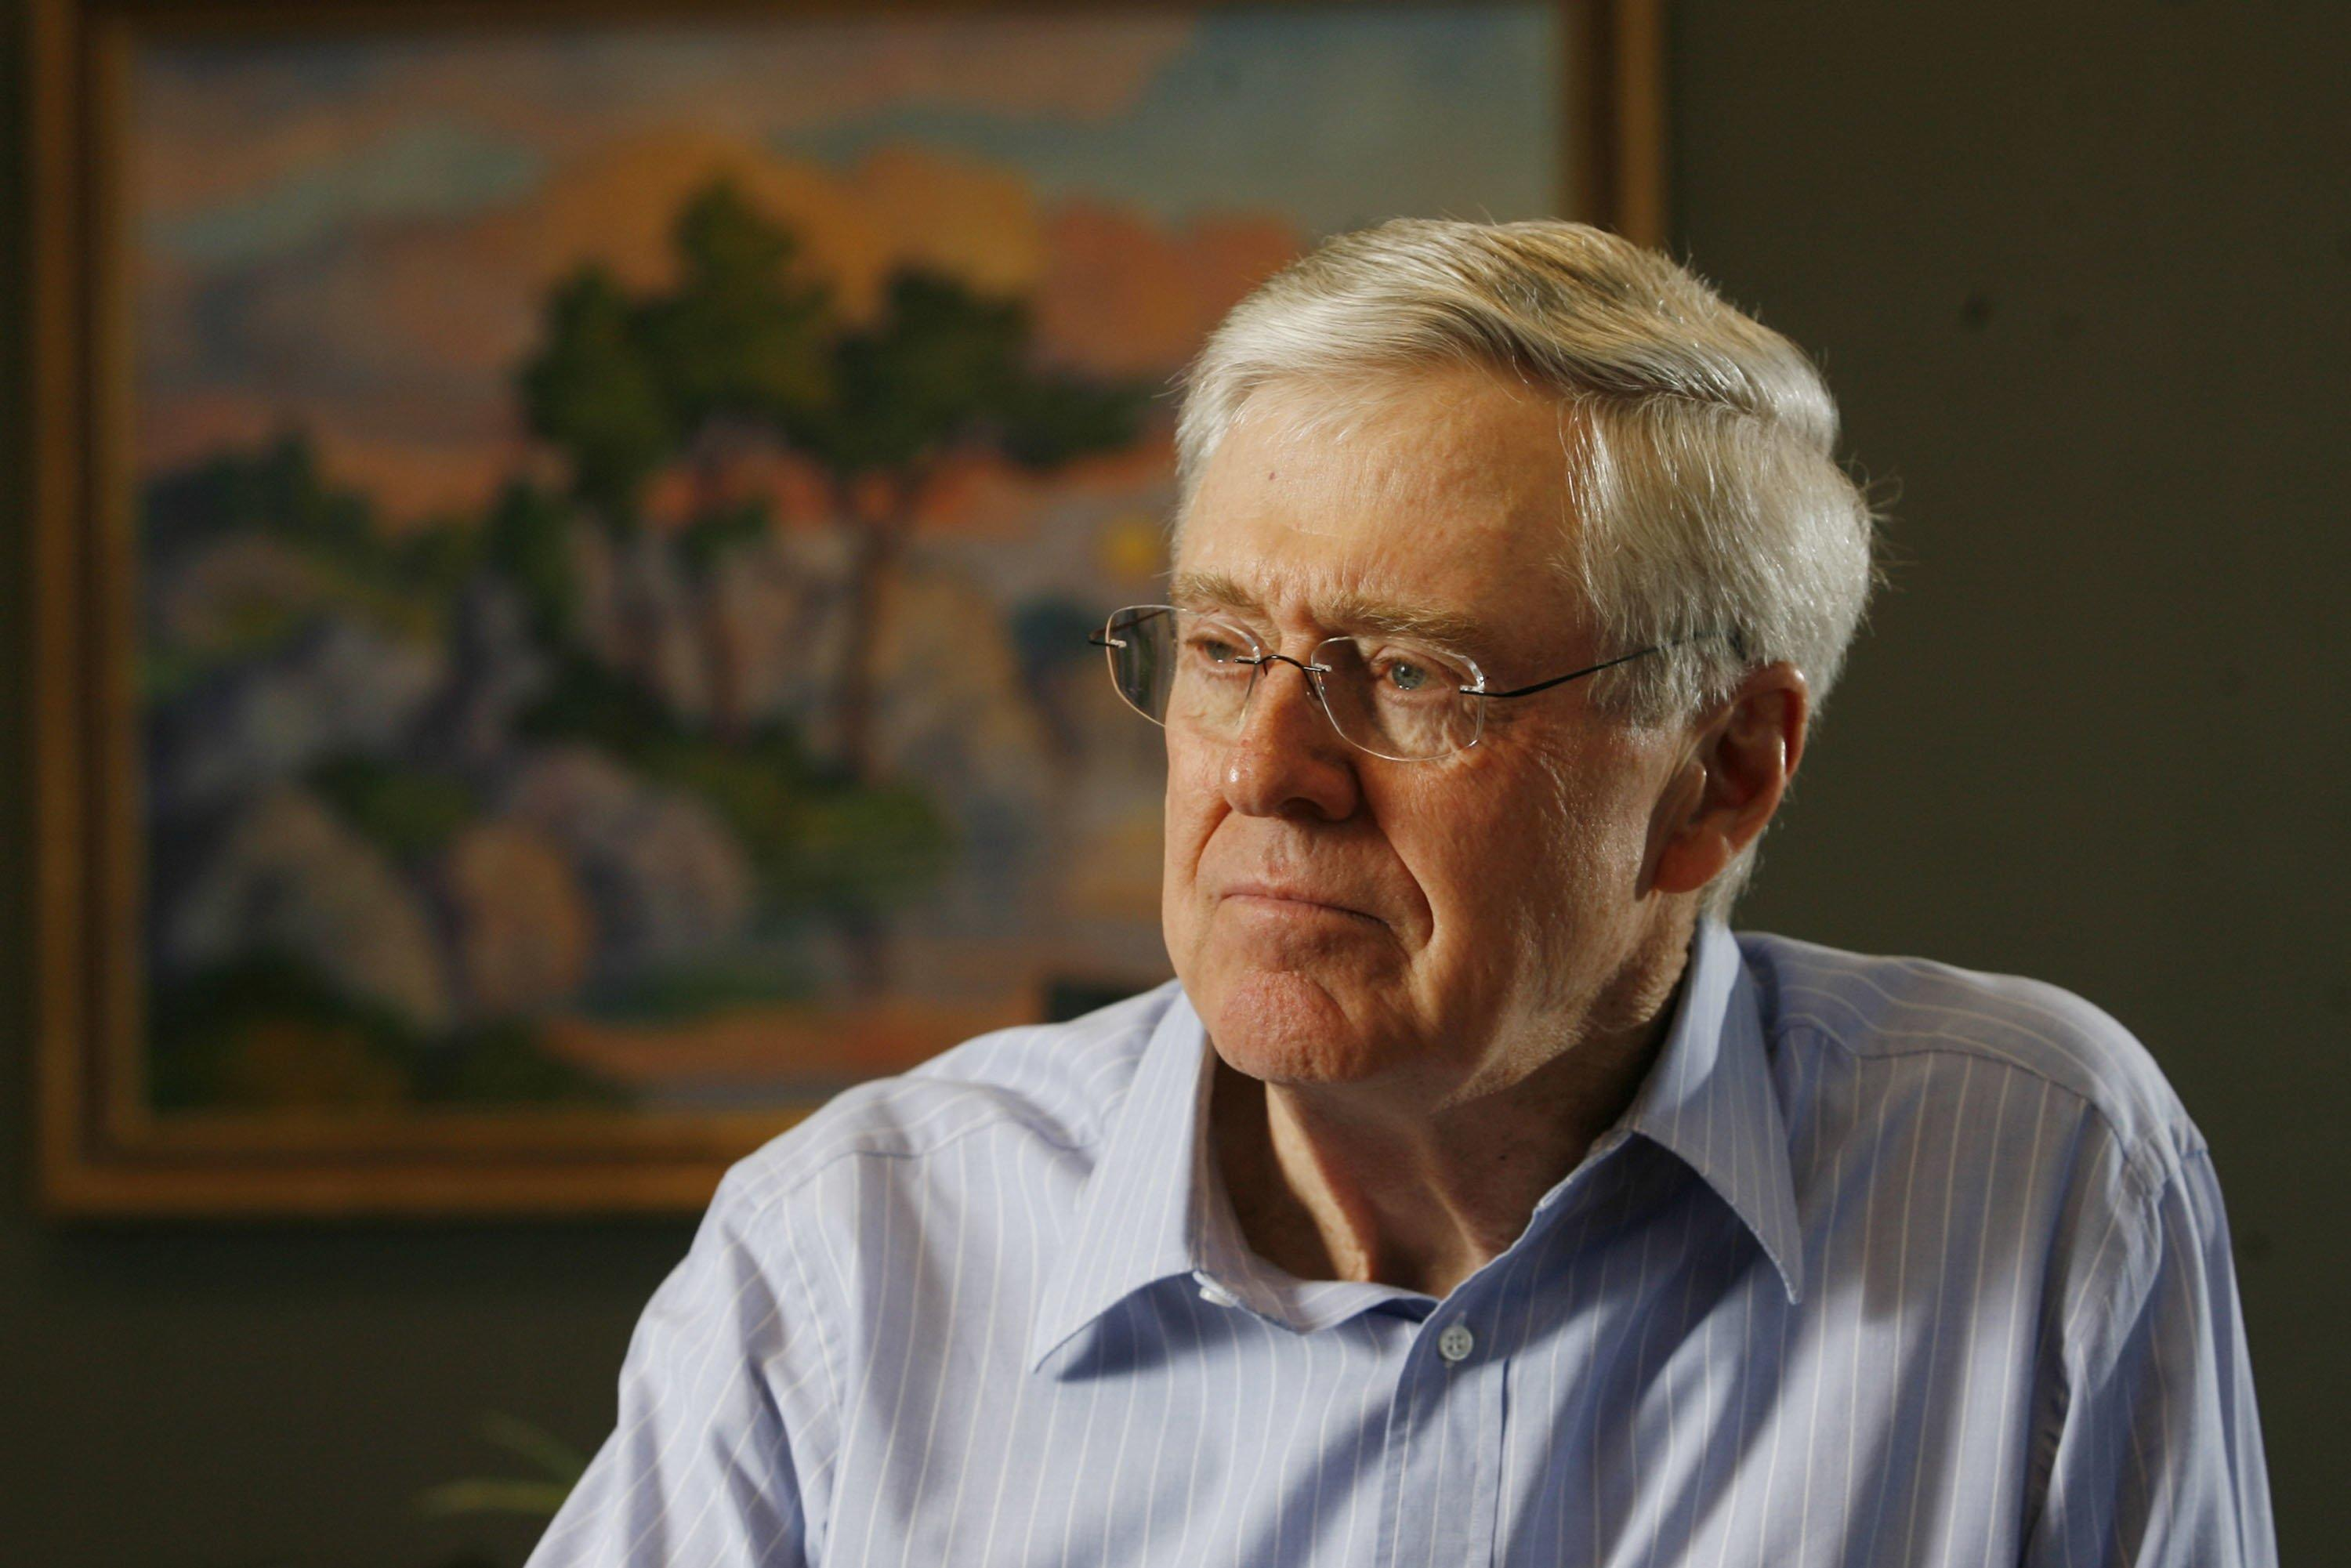 Yes, America Is Rigged. Here is What I Learned from Reporting on Koch Industries.